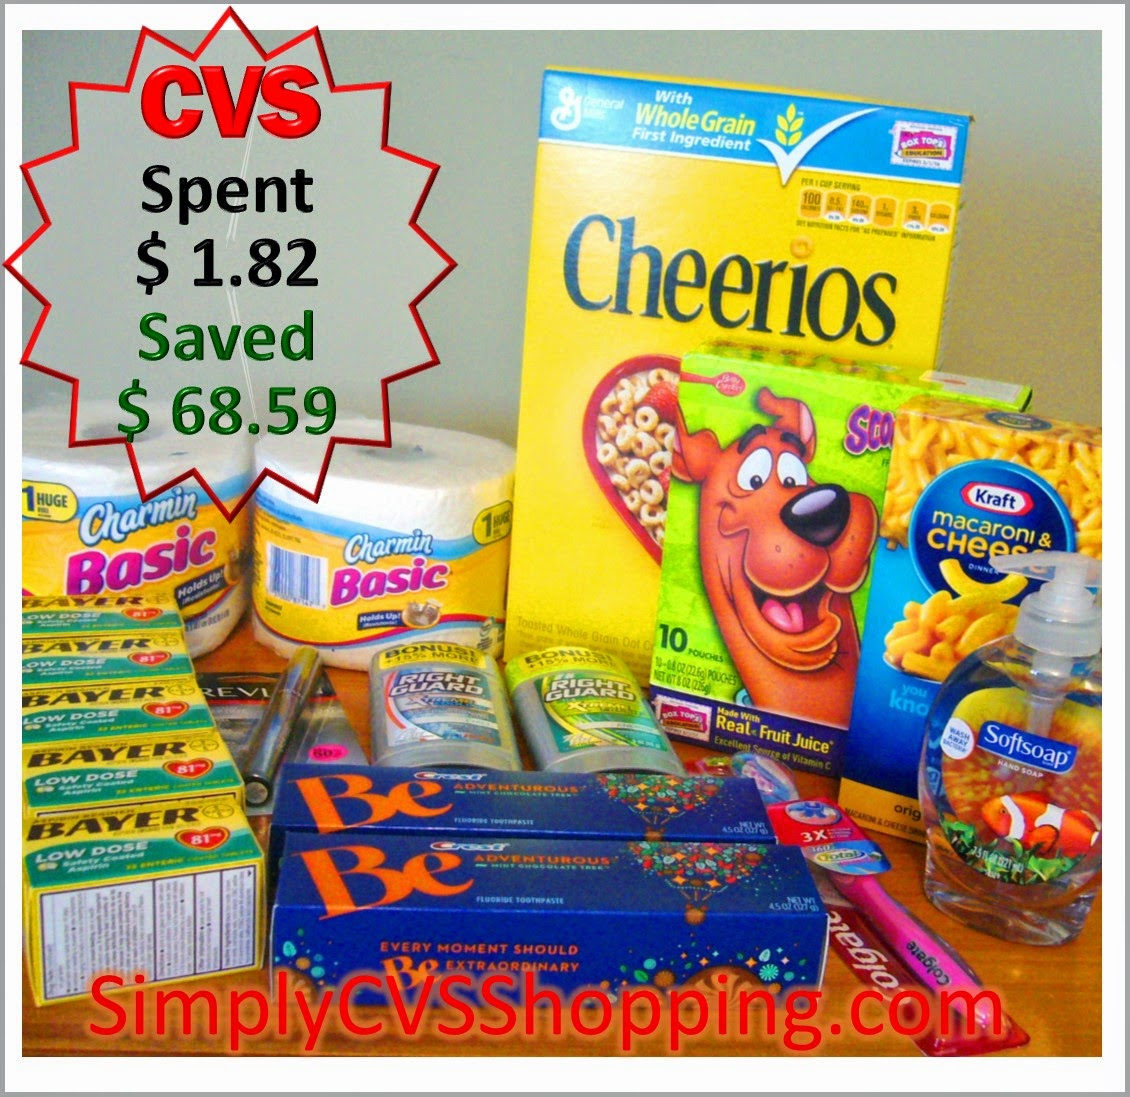 My Week of 6/15 CVS Shopping Trip